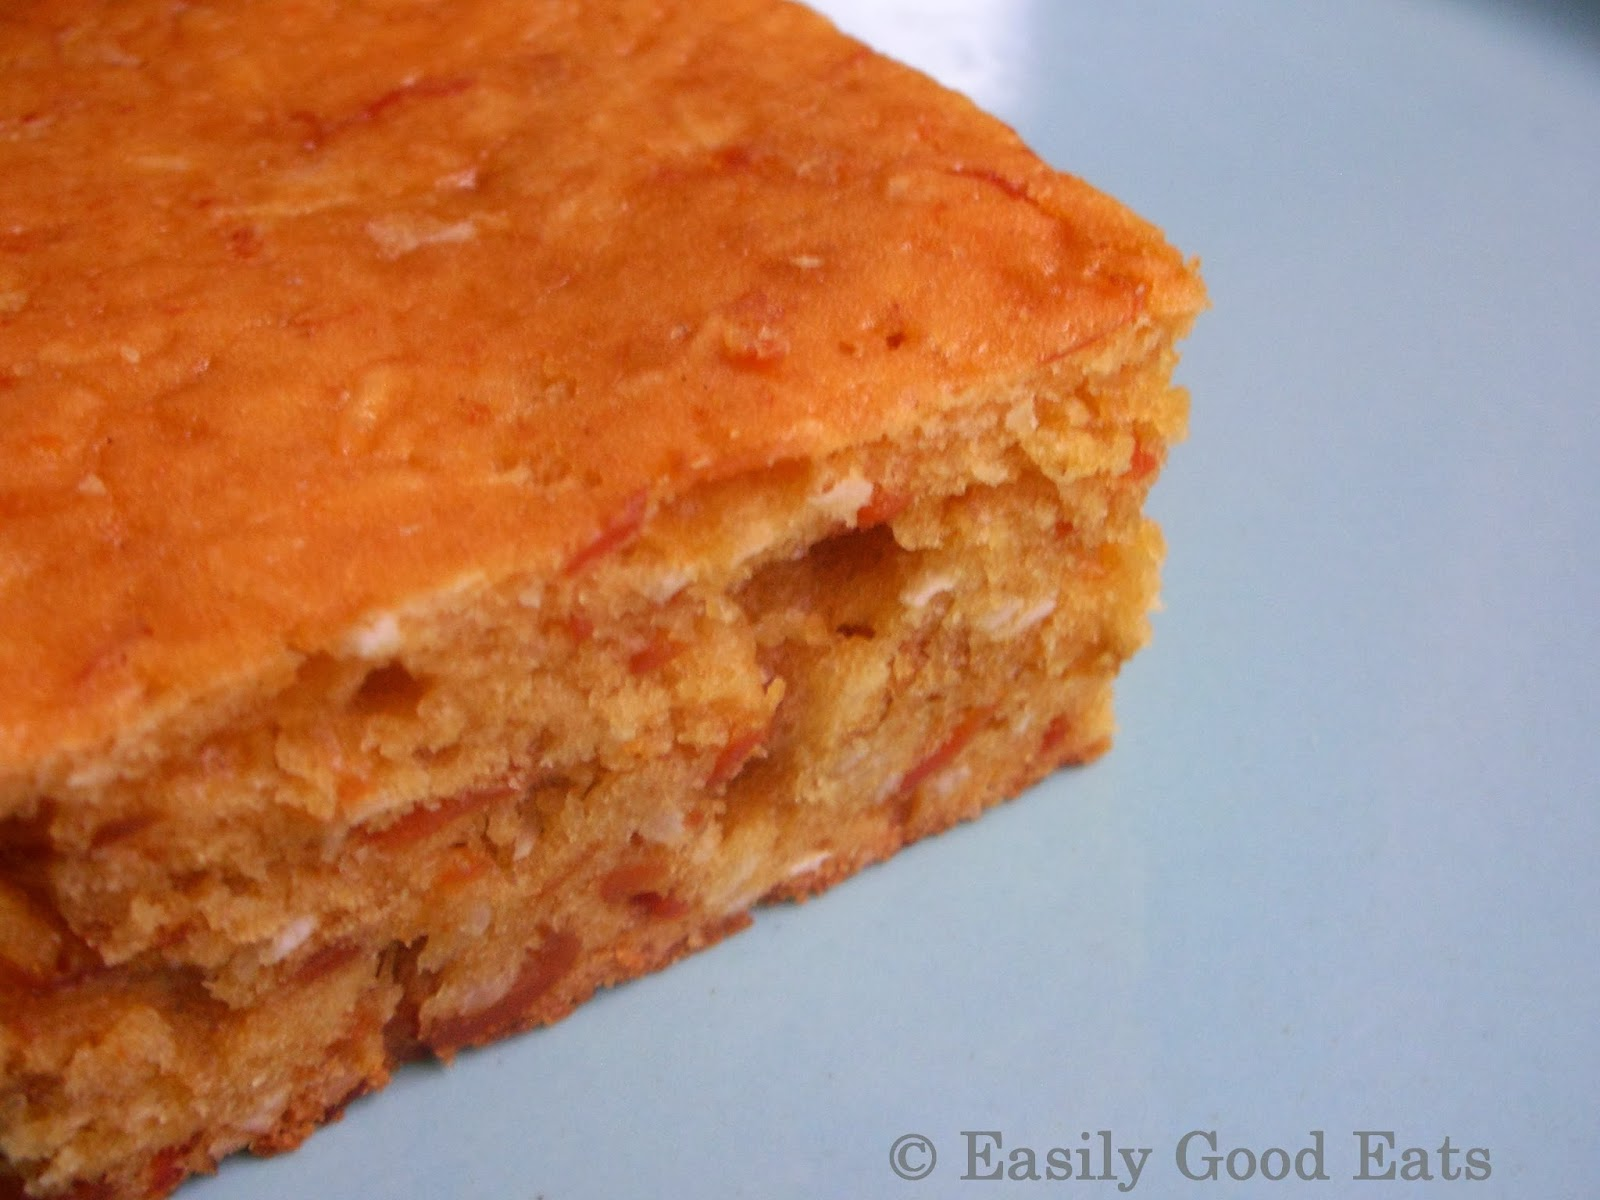 Carrot Cake Recipe Uk With Oil: Easily Good Eats: March 2014